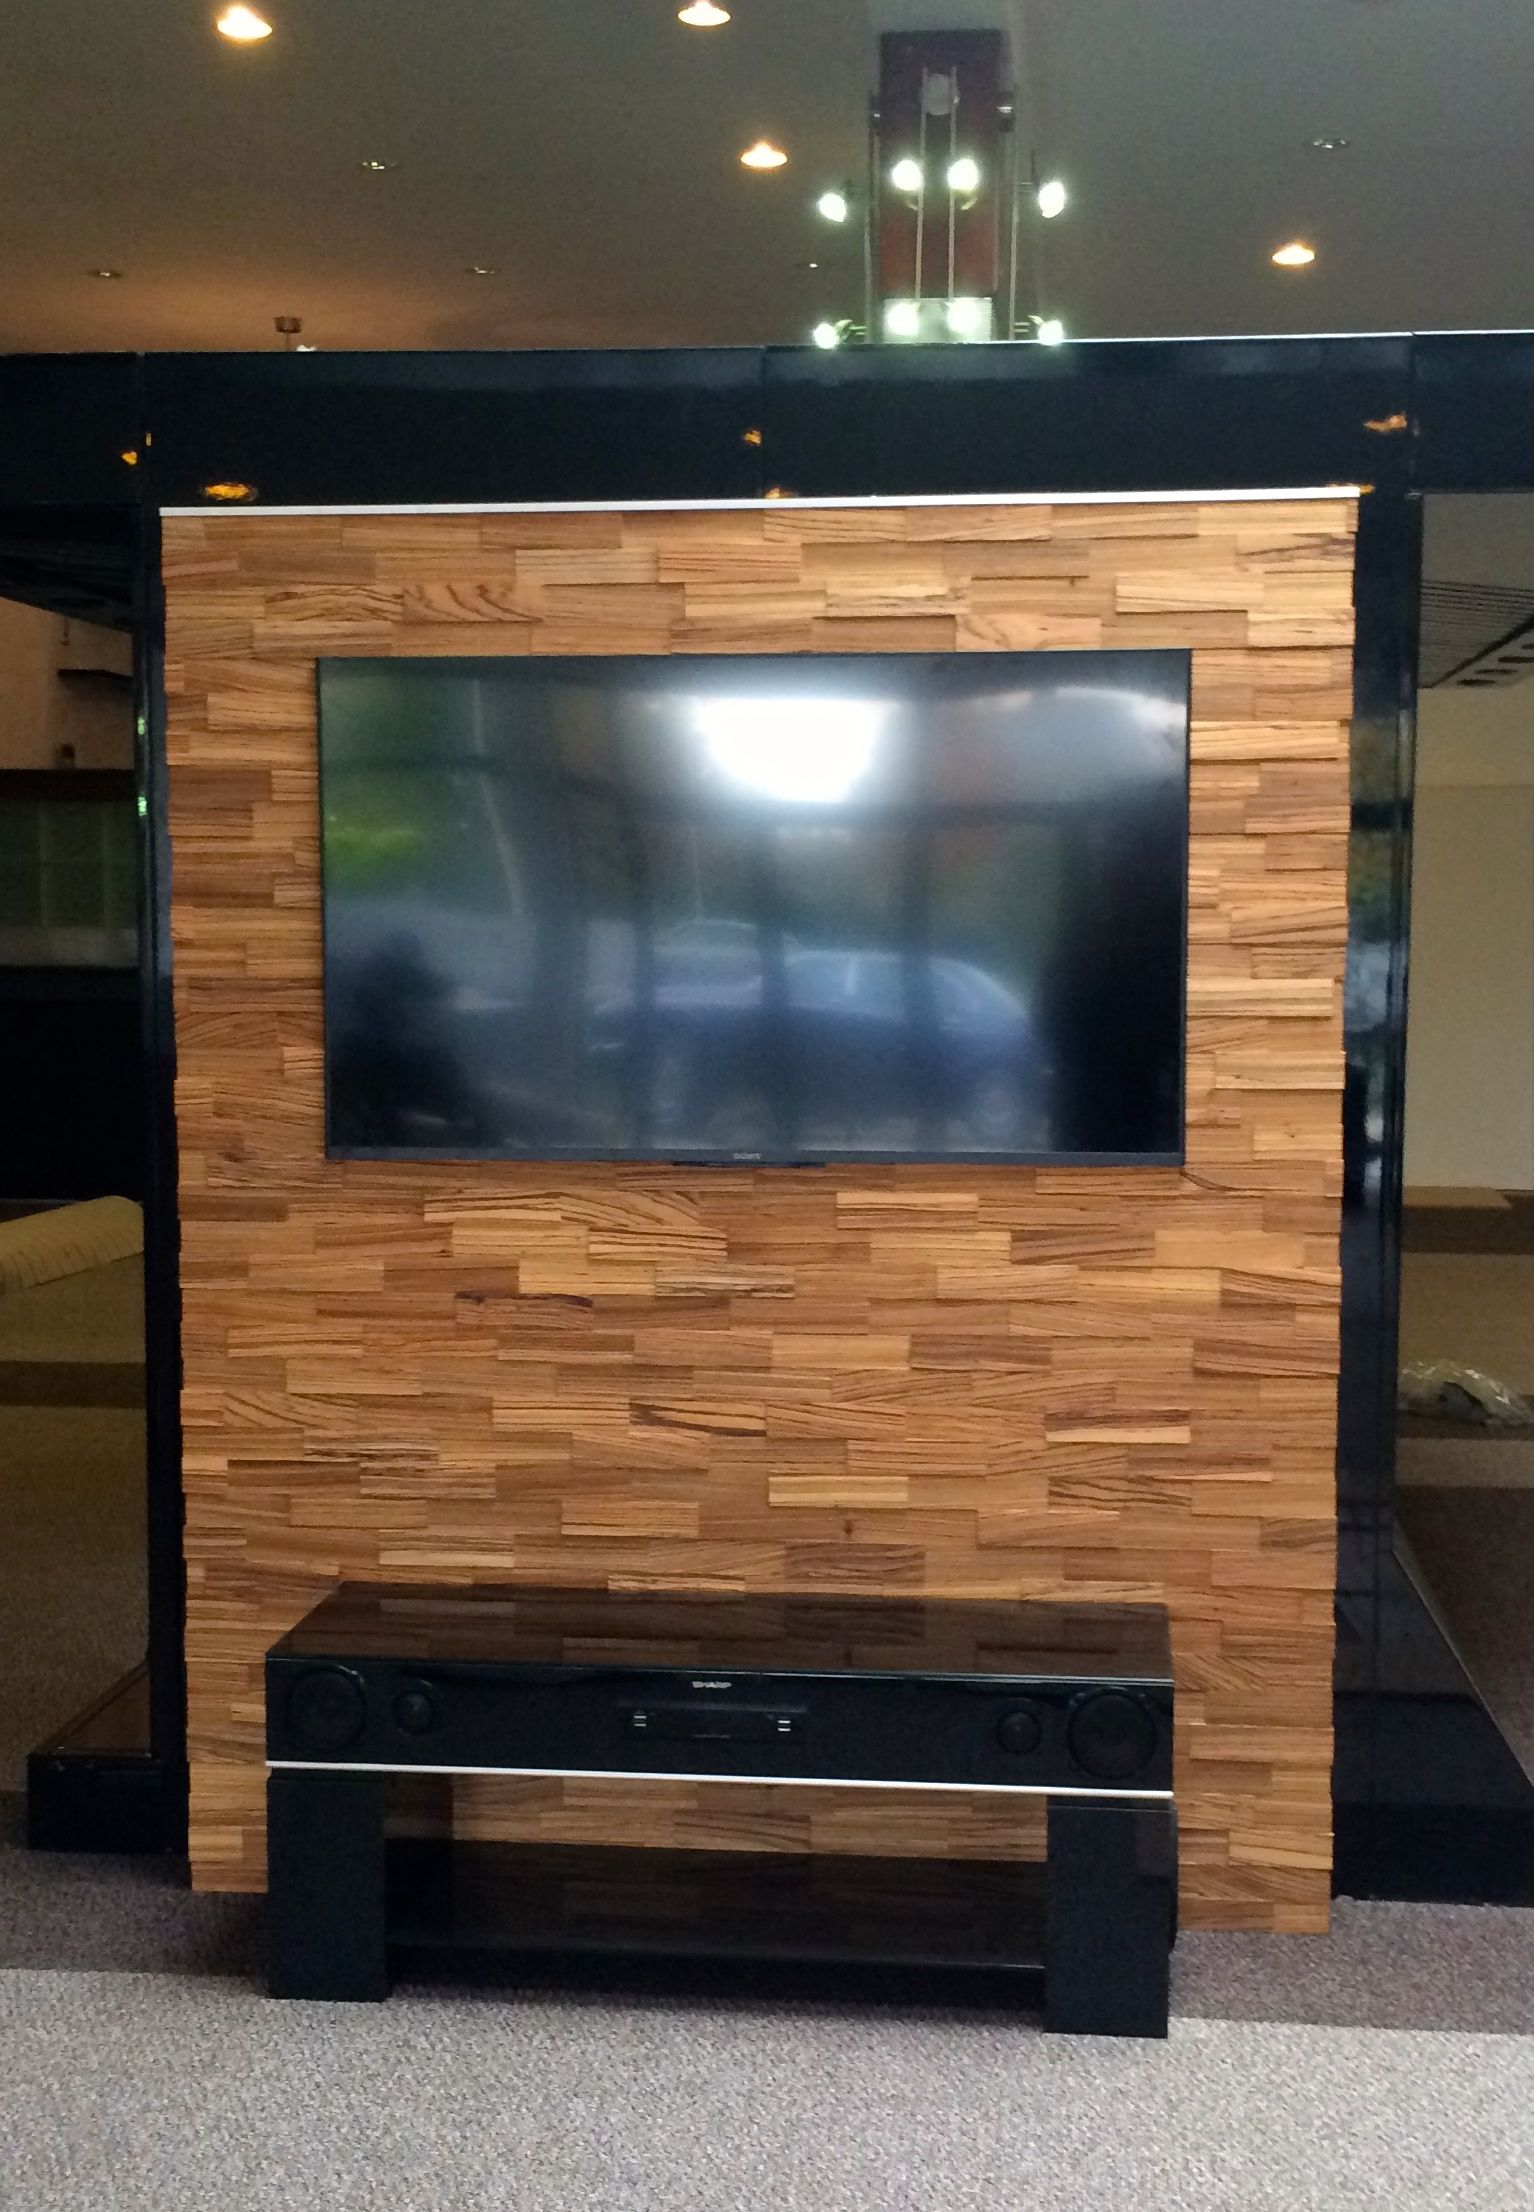 Nice Solution For Television, No Cables Wodewa Zebra Wood Wwwwodewaeu